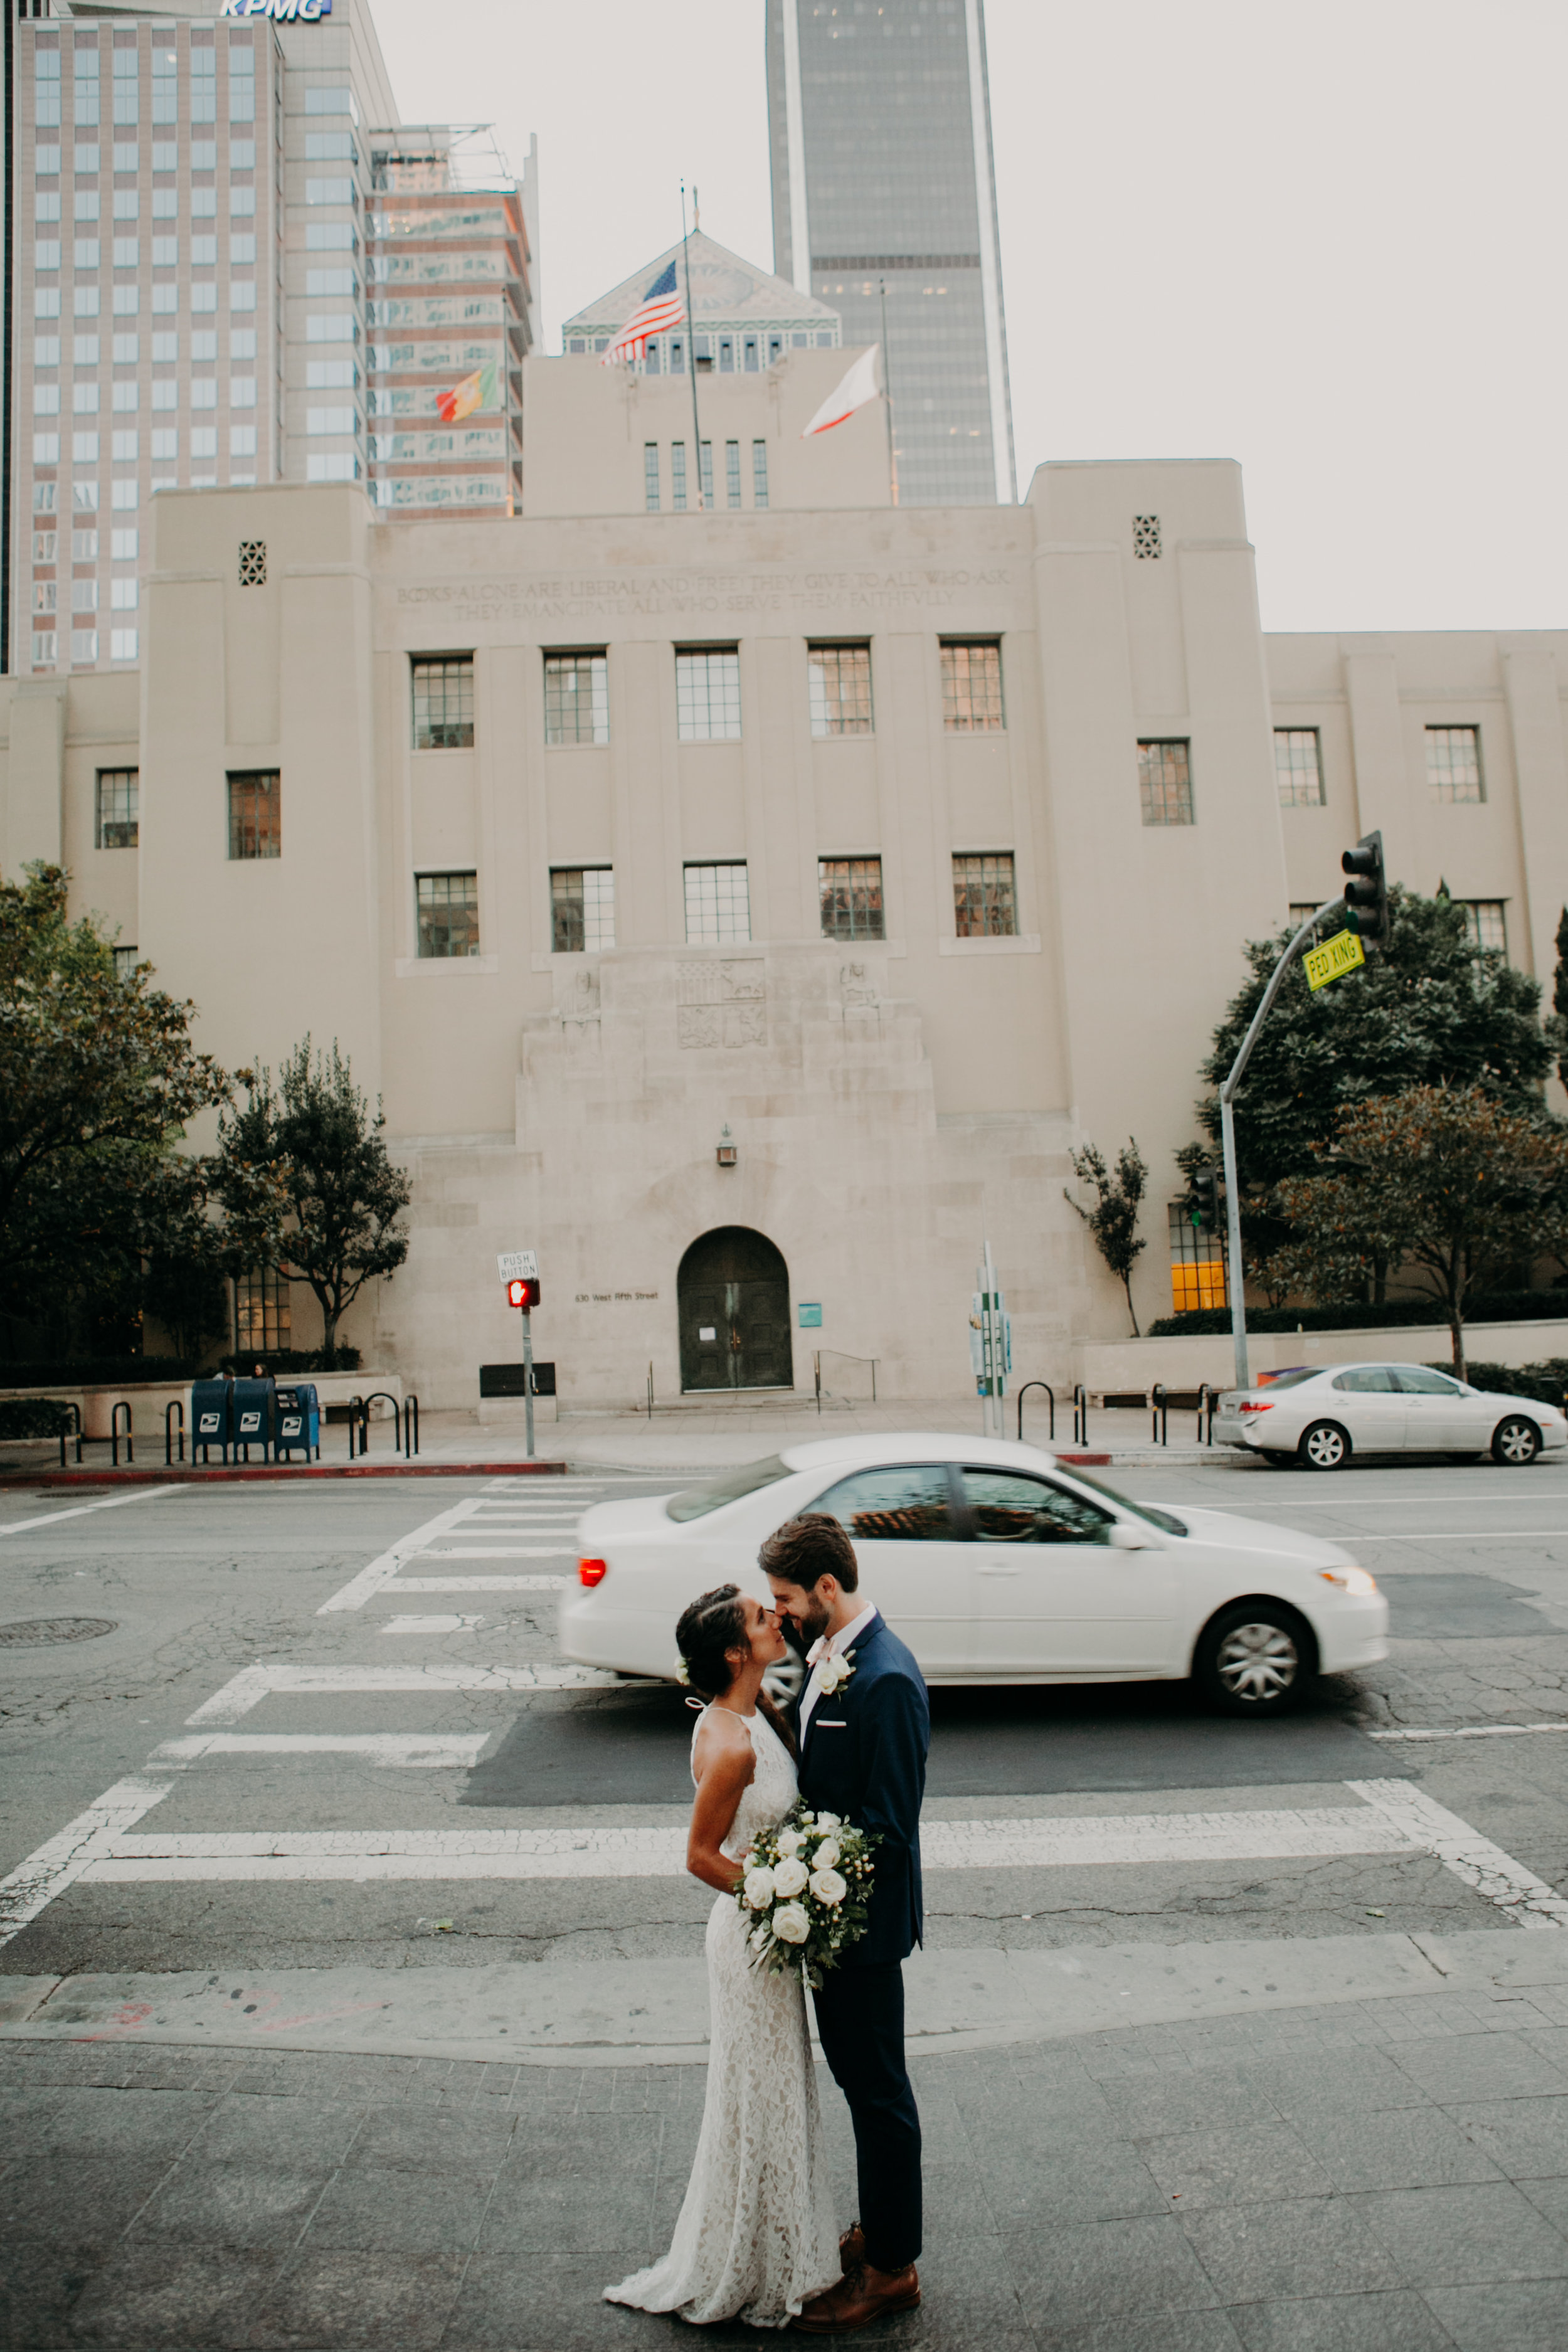 Los Angeles Library Wedding Jonathan & Amelia  Emily Magers Photography-288.jpg